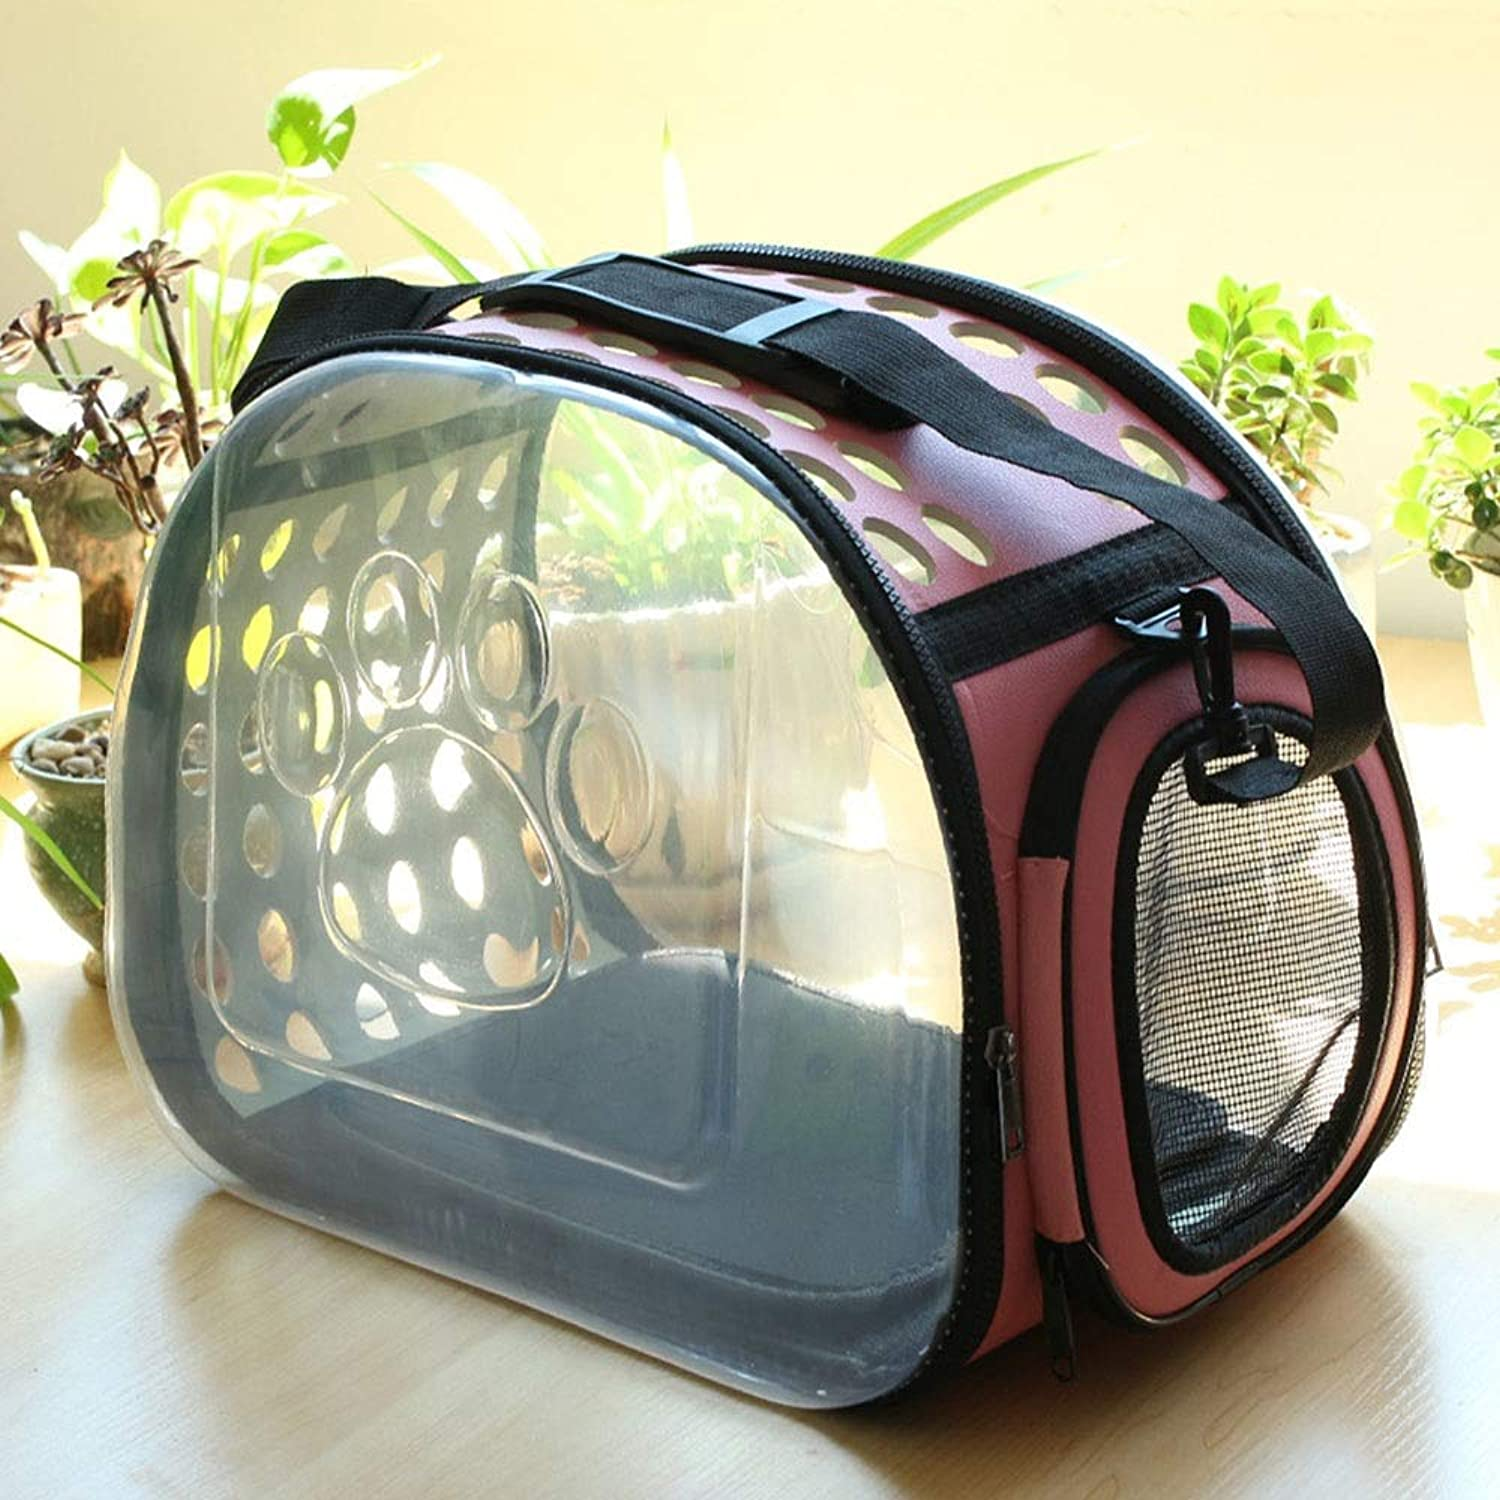 FELICIOO Transparent Small And Mediumsized Dogs Out Of The Portable Air Box Breathable Foldable Portable Cat Bag (color   Pink, Size   L)